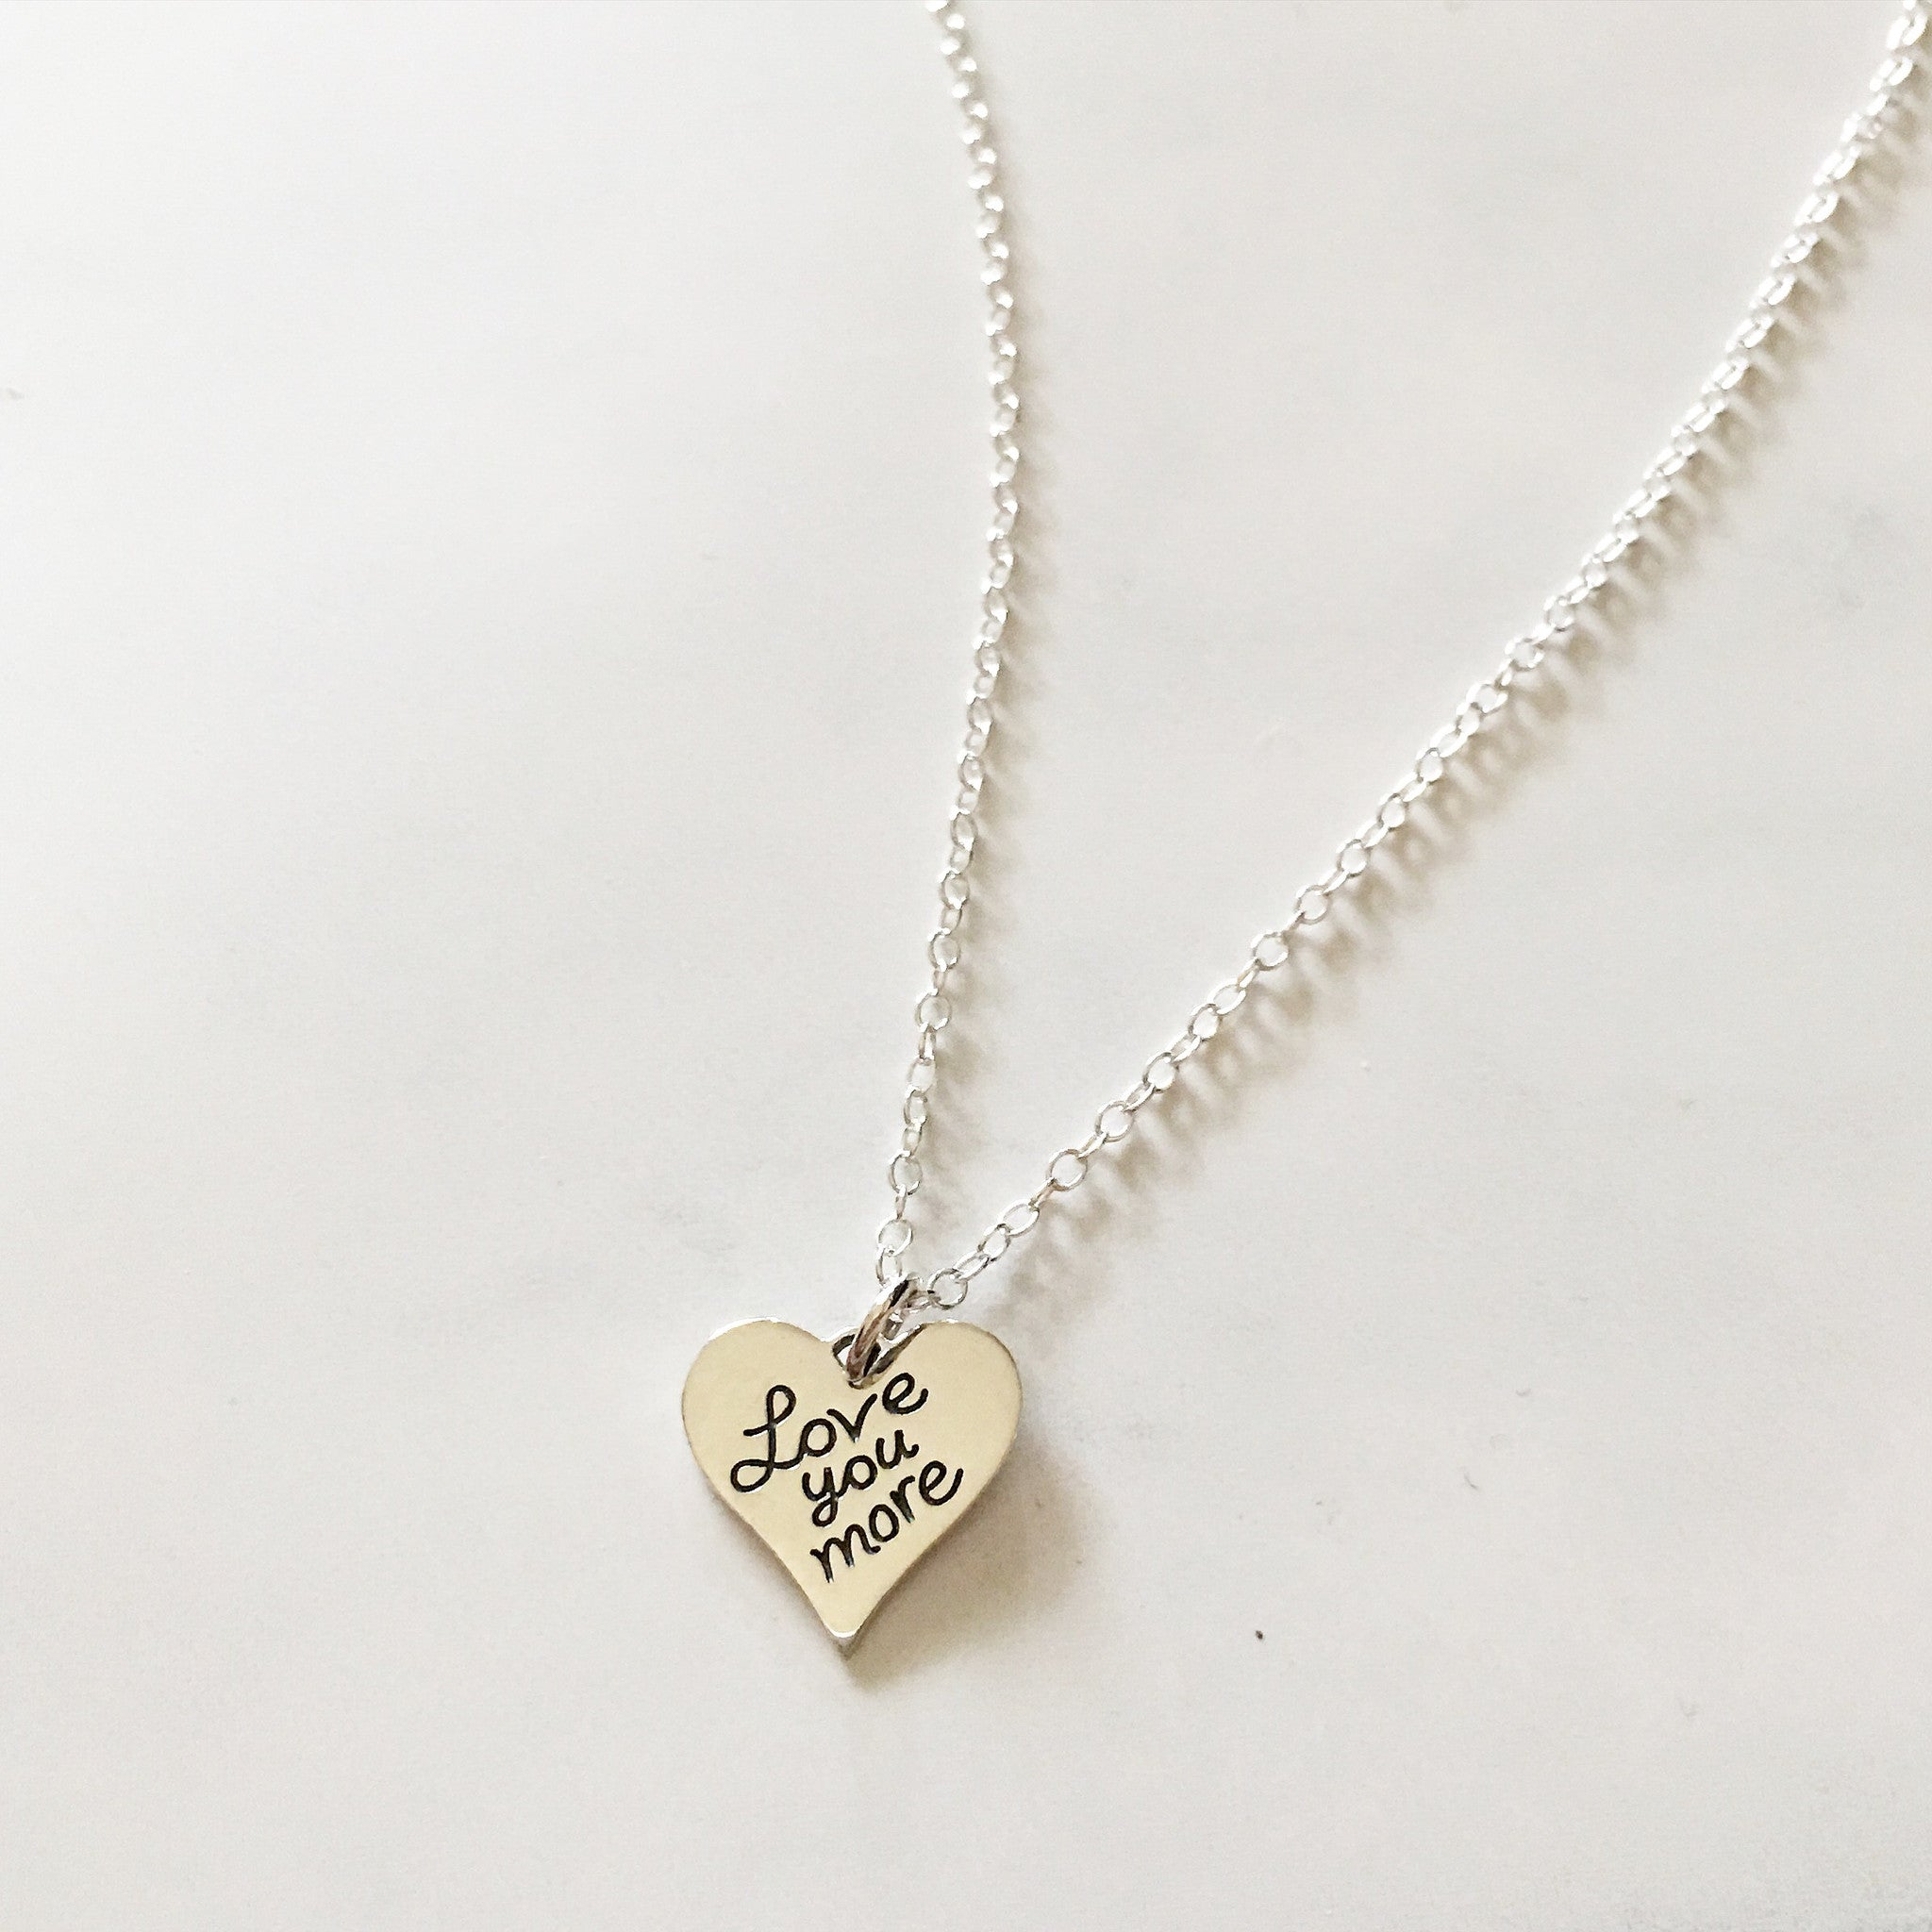 LOVE YOU MORE - Necklace